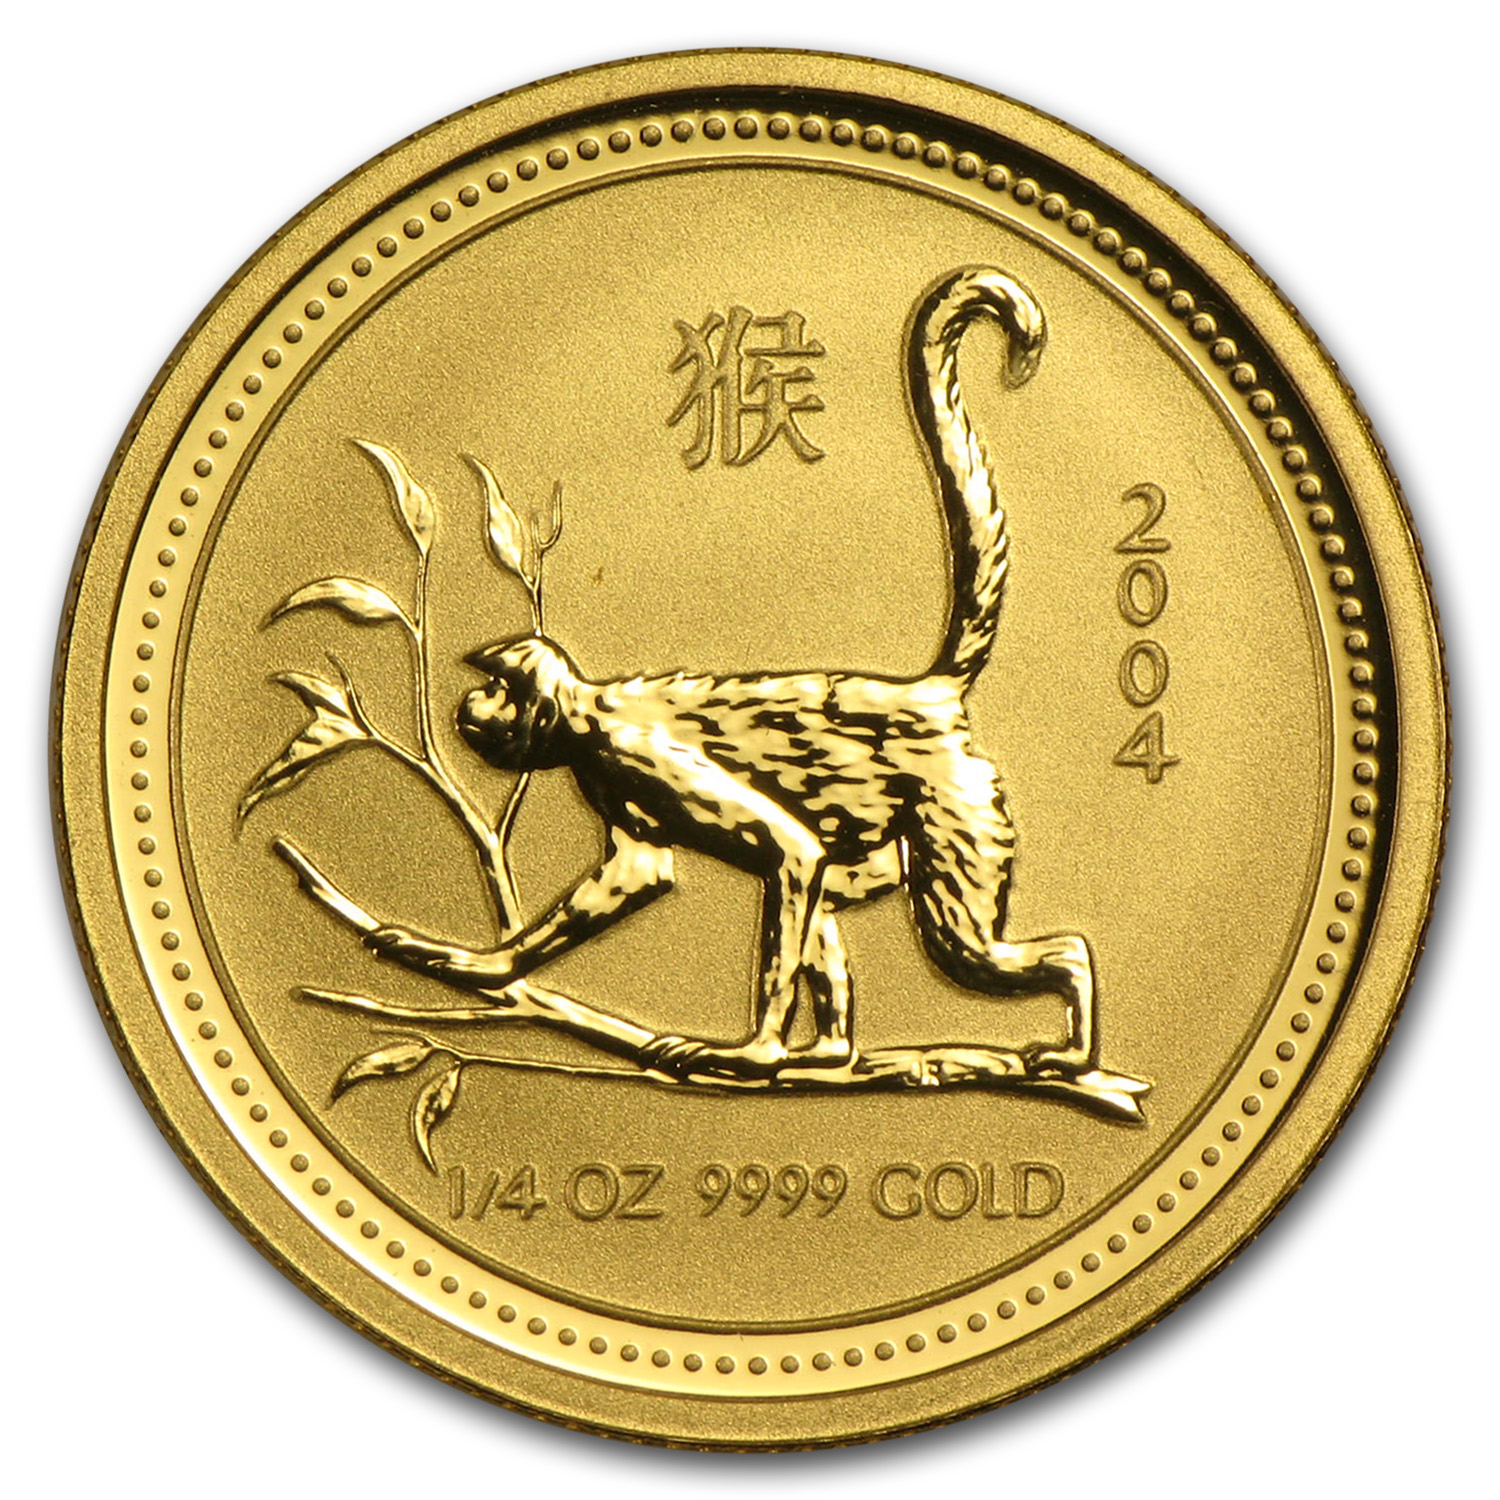 2004 1/4 oz Gold Year of the Monkey Lunar Coin (Series I)